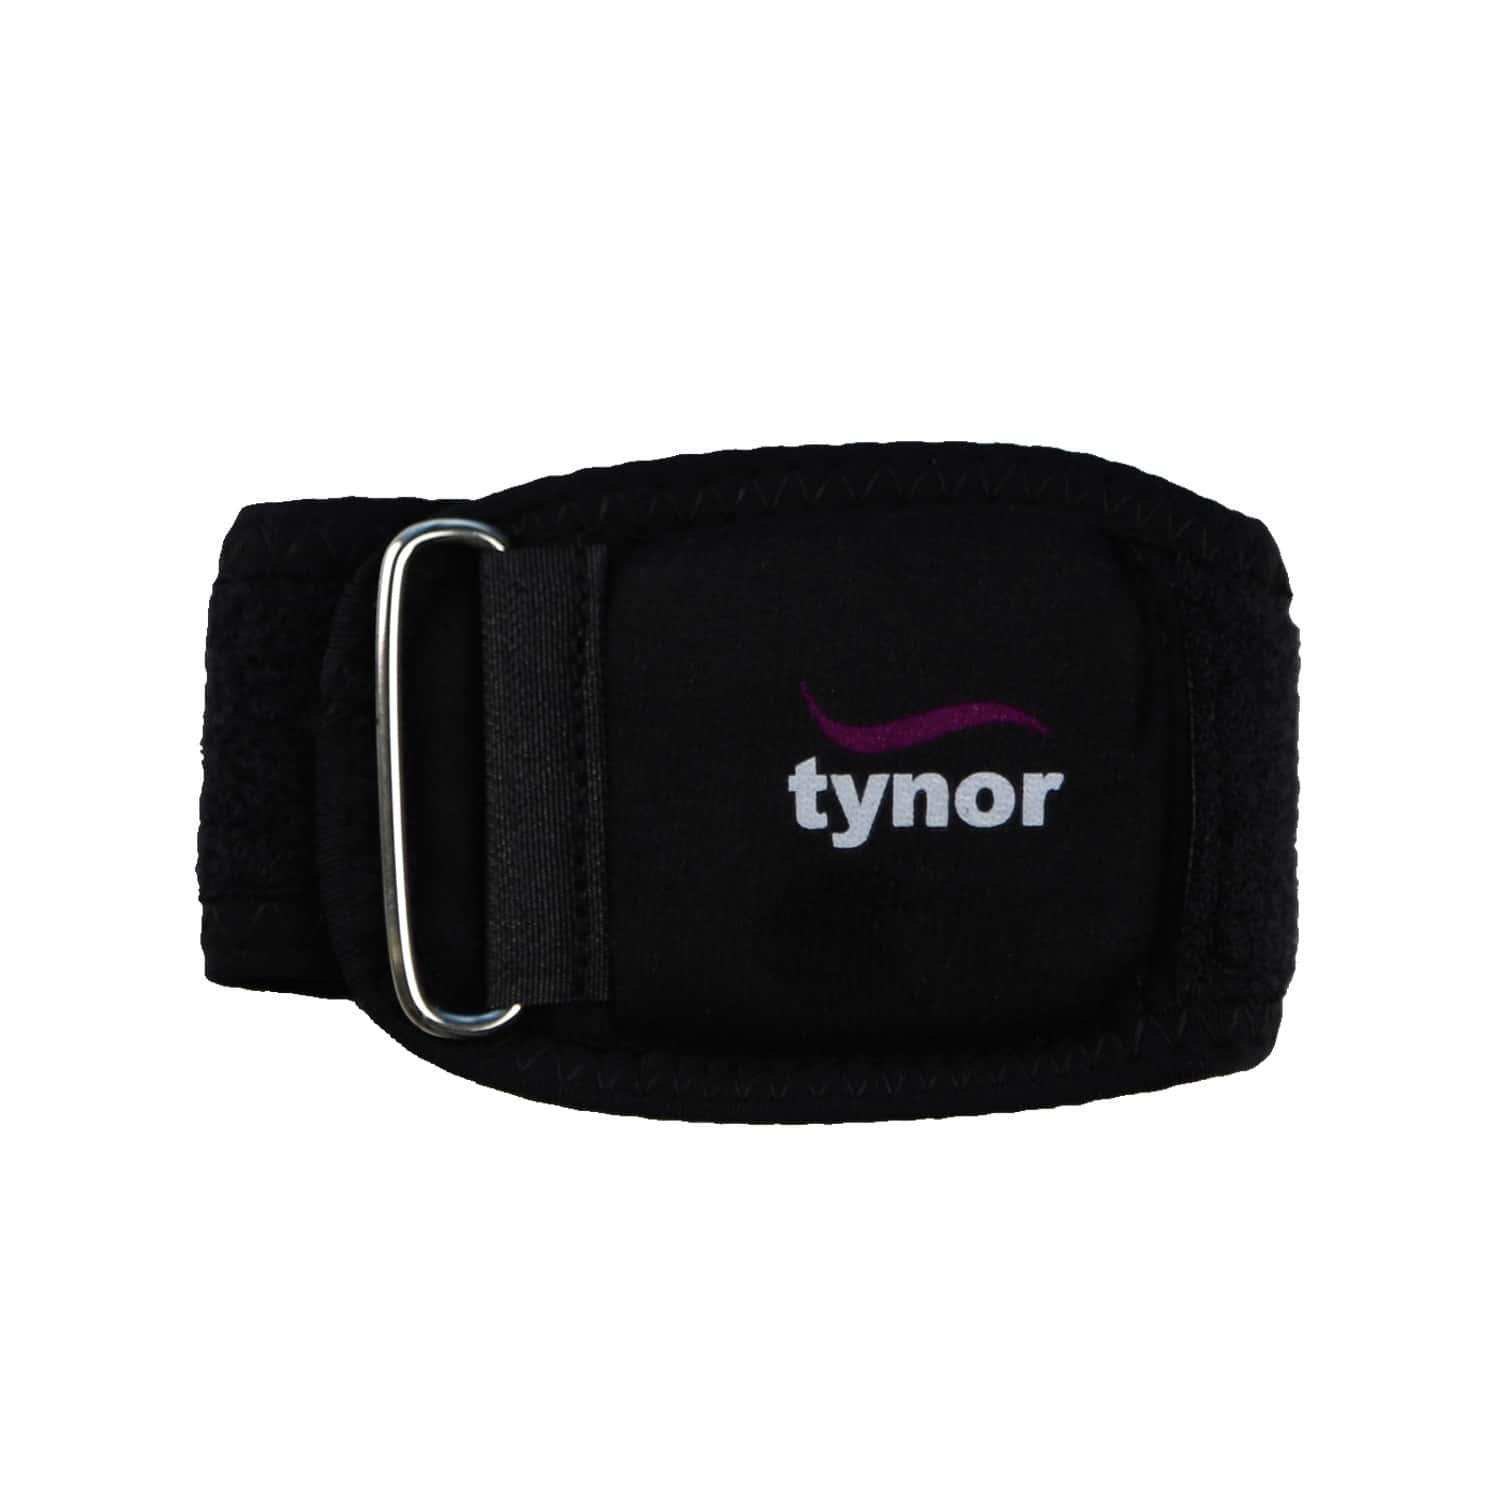 Tynor Tennis Elbow Support ( Pain Relief,forearm,elbow) - Large